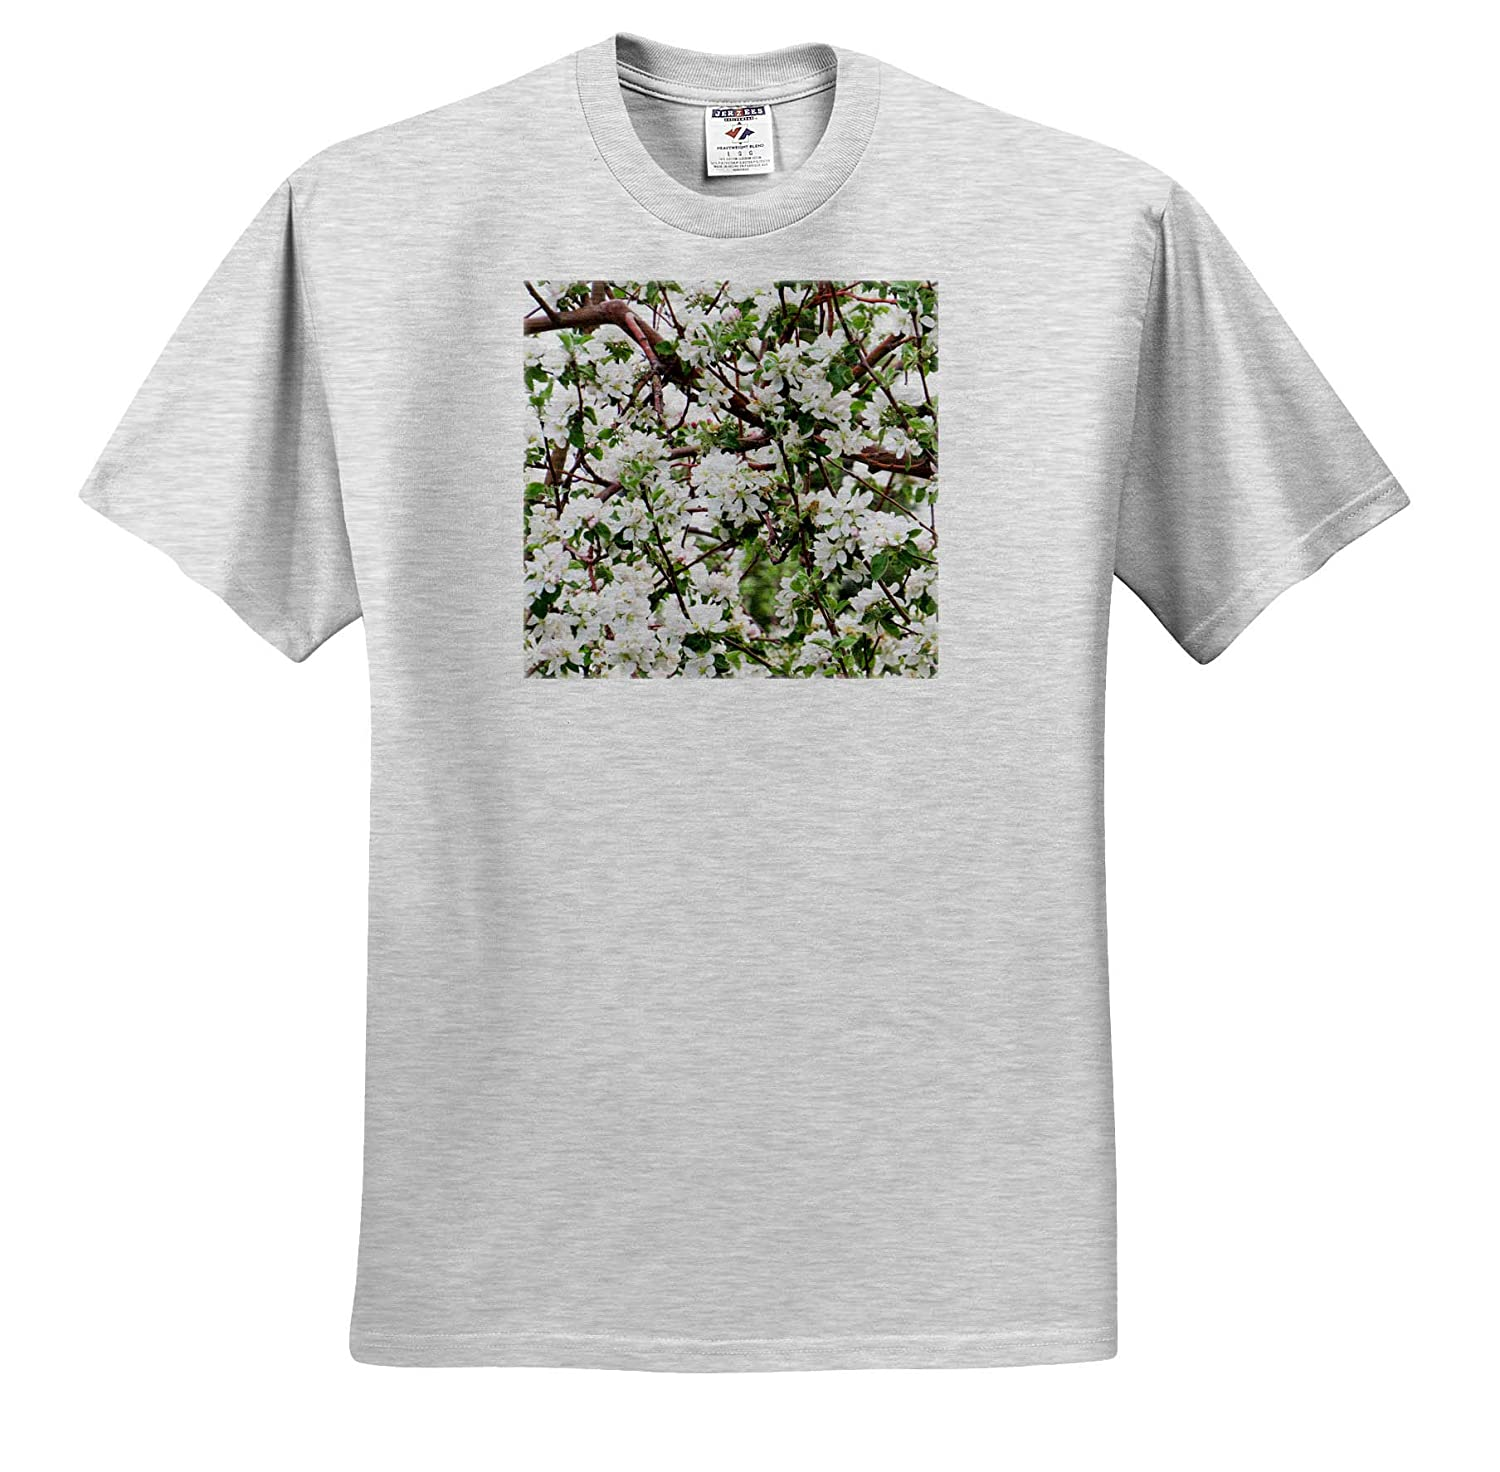 Blossom Popping on an Apricot Tree in Spring 3dRose Jos Fauxtographee T-Shirts Blossoms Popping